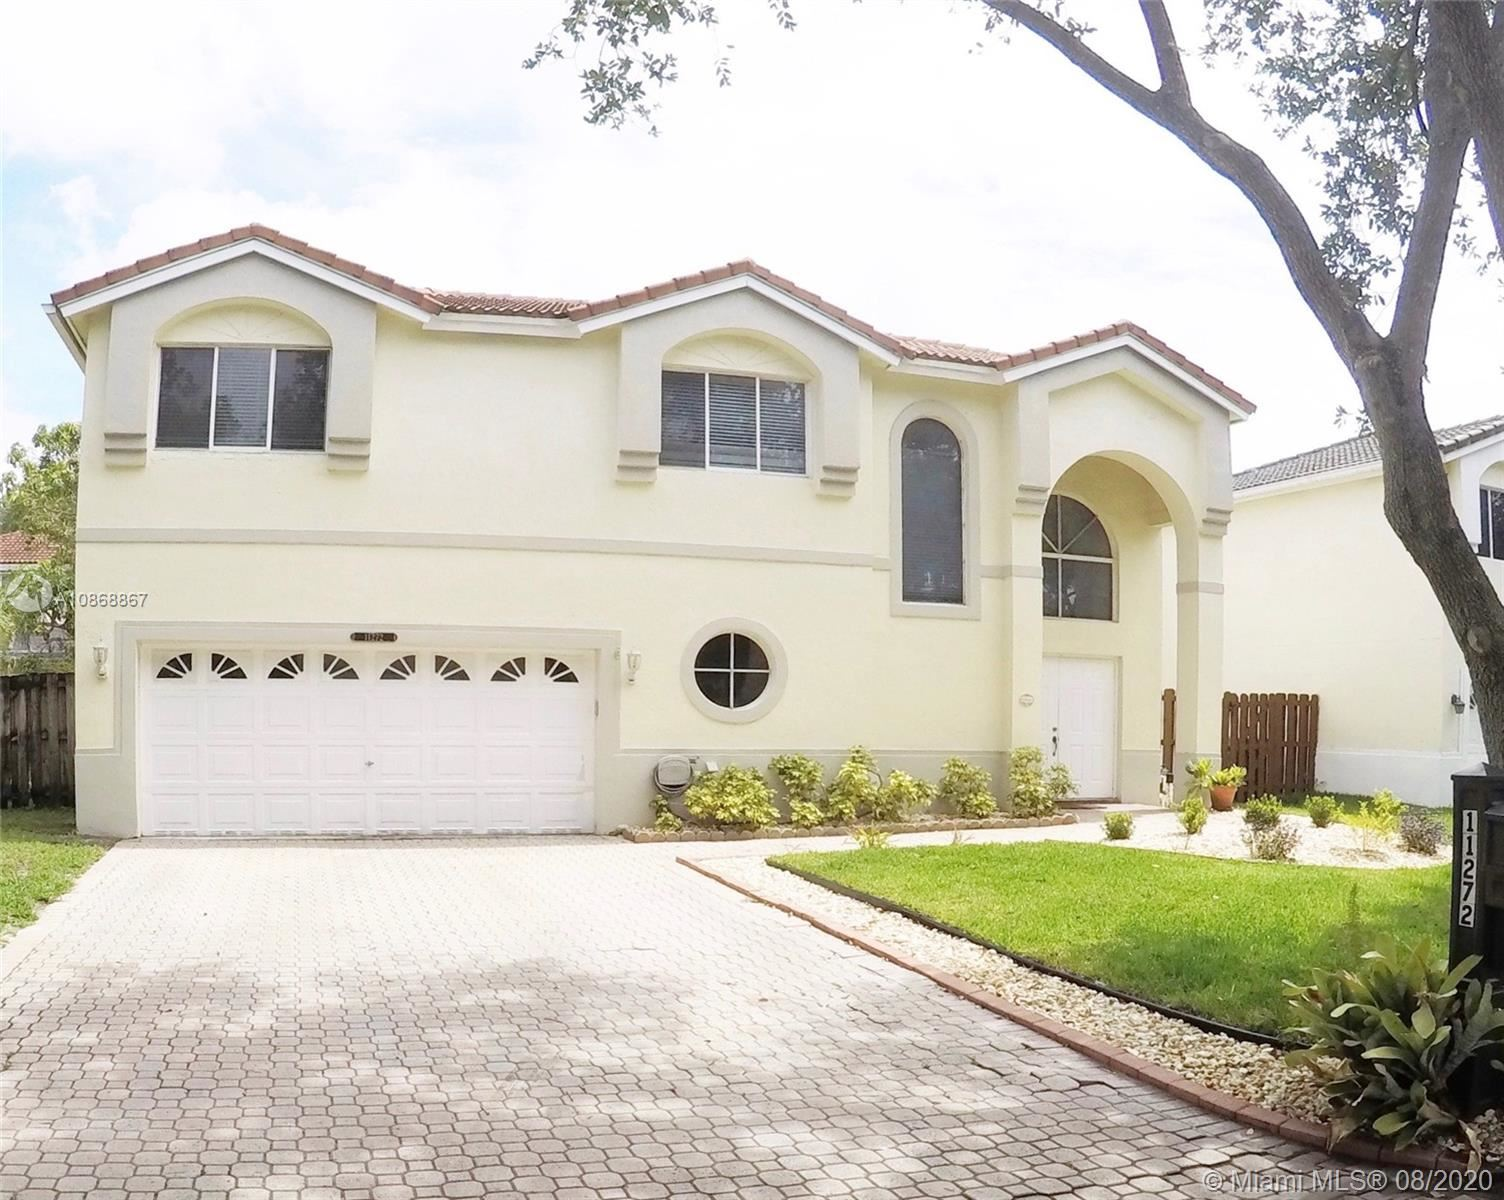 11272 Roundelay Rd, Cooper City, FL 33026 - #: A10868867